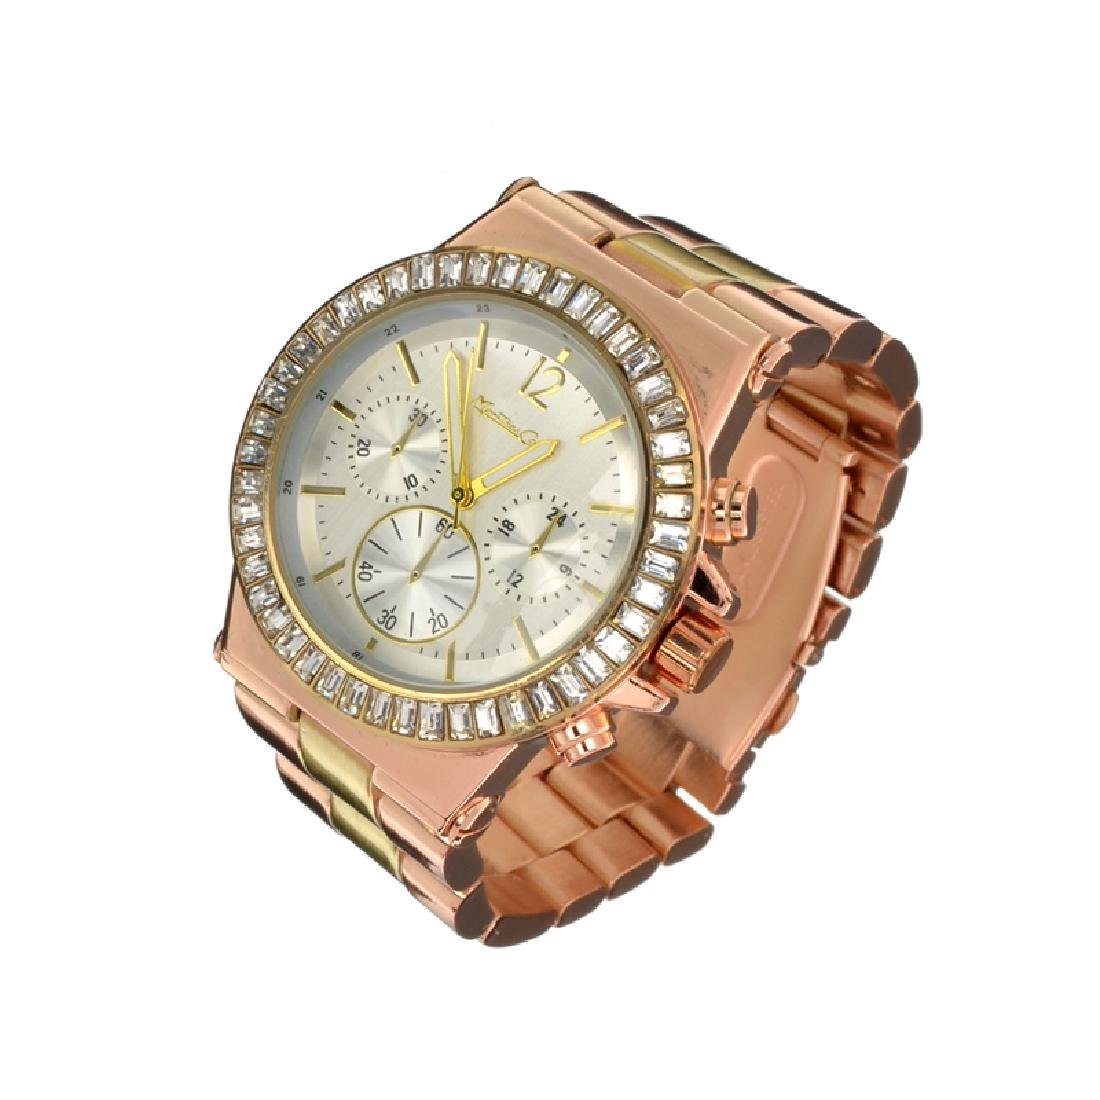 New Women's Montres Carlo, Stainless Steel Back, Water